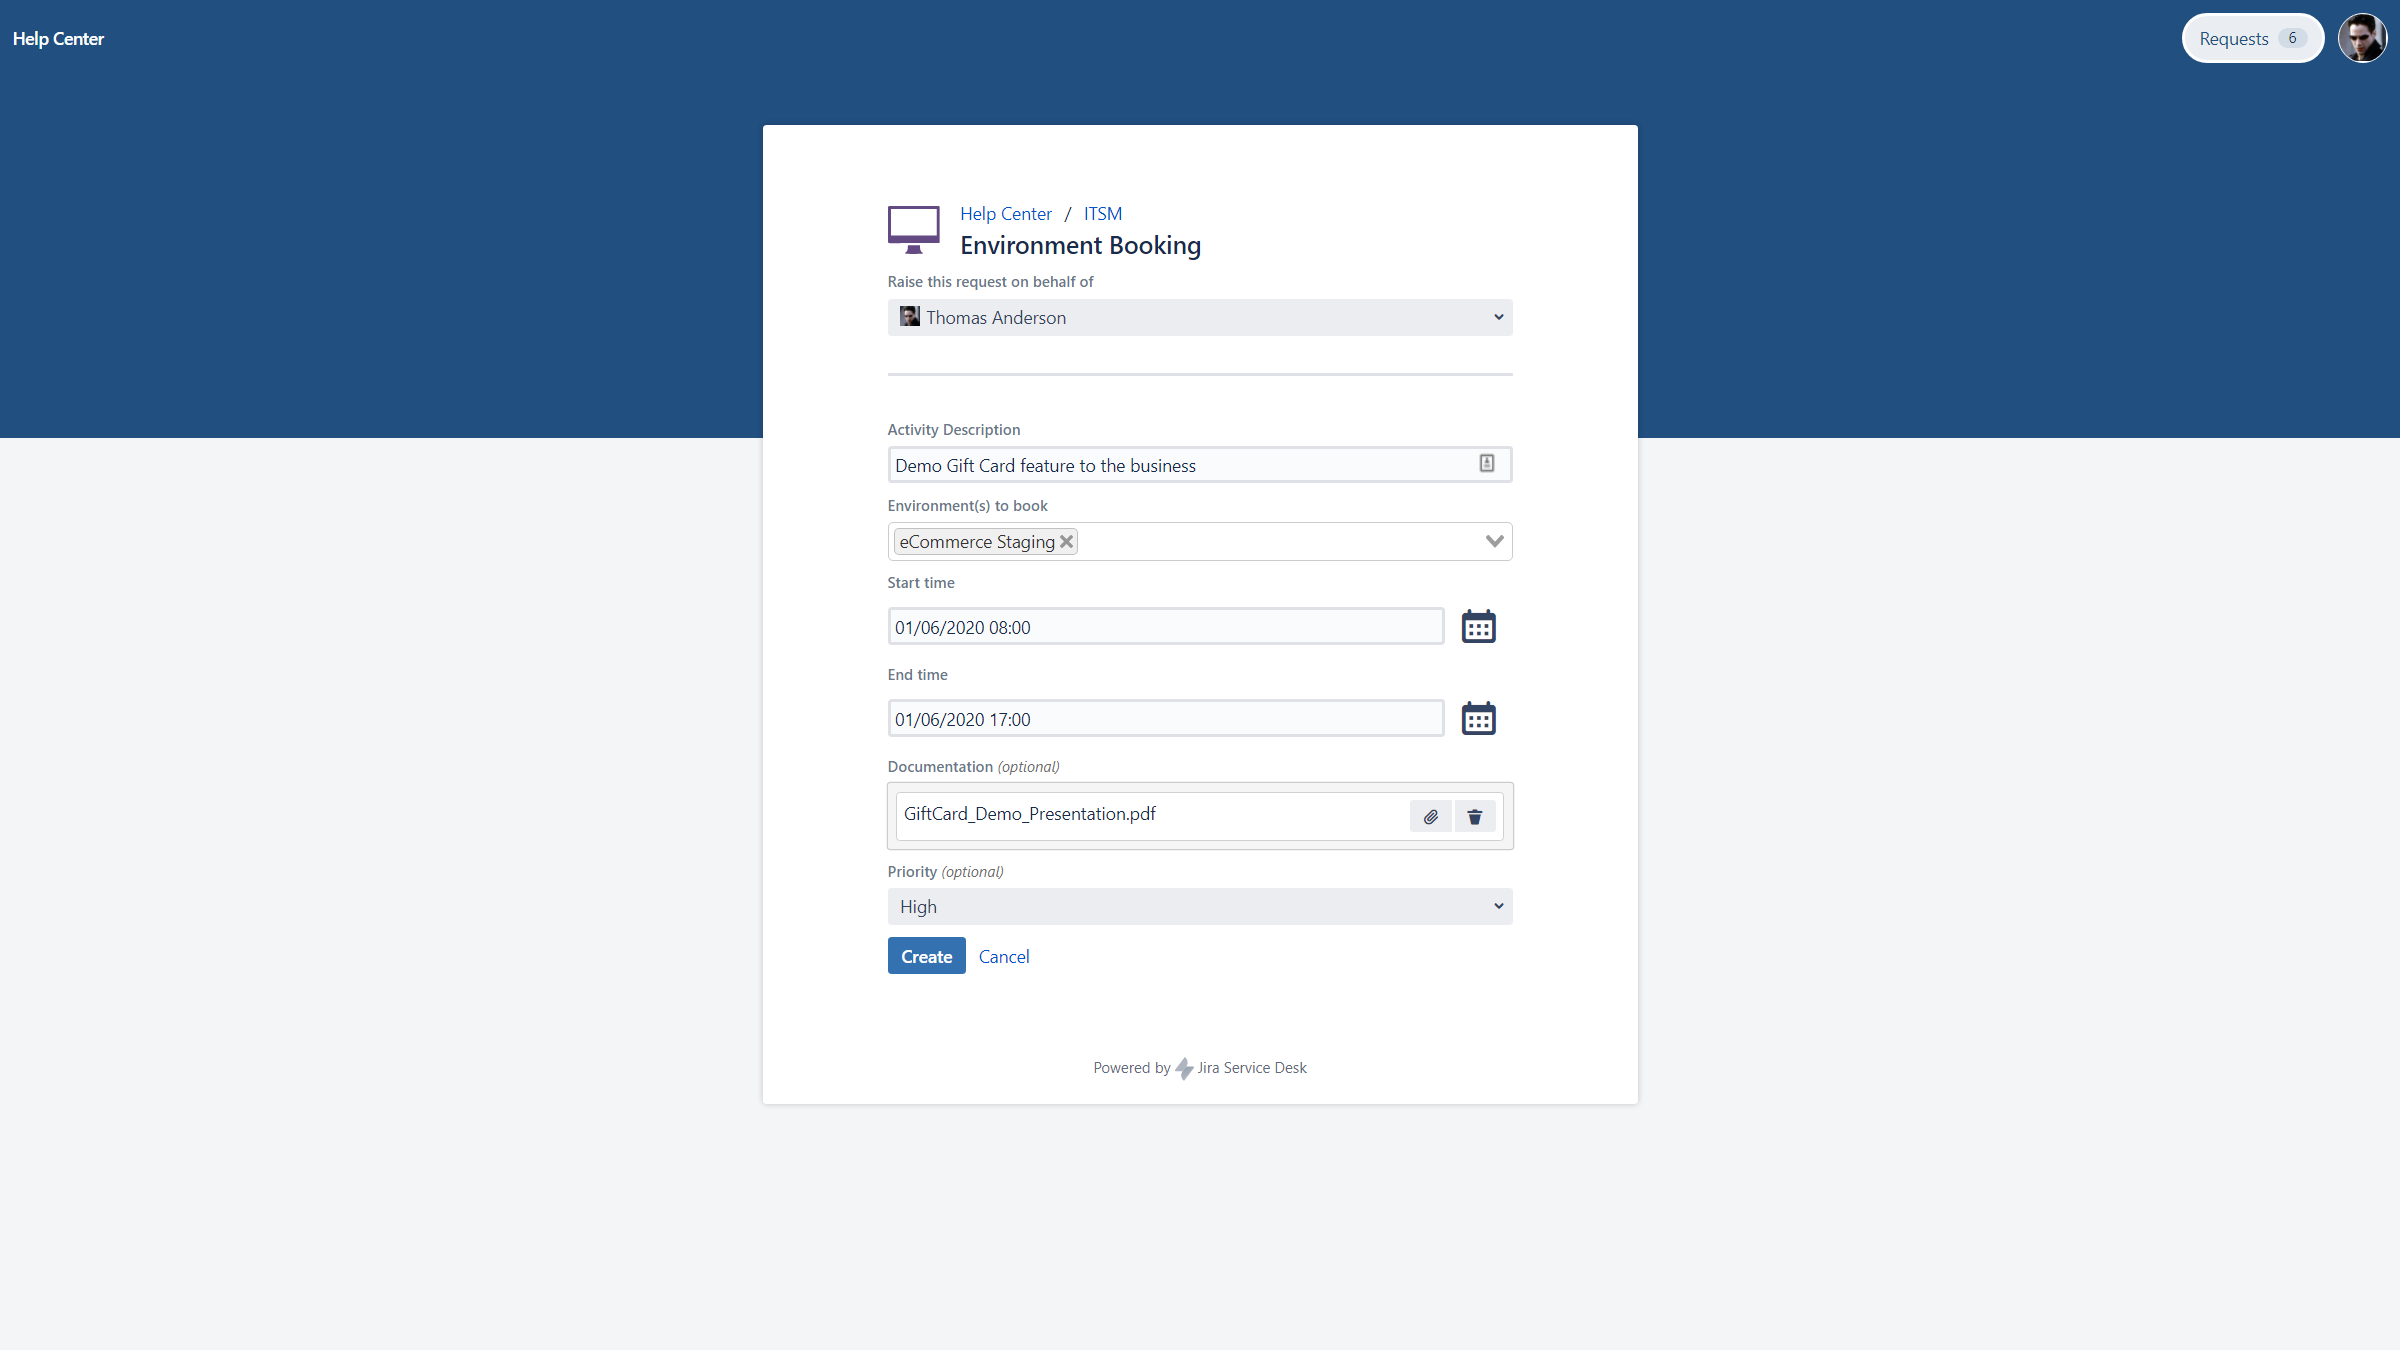 Environment Booking Request with Golive on Jira Service Desk